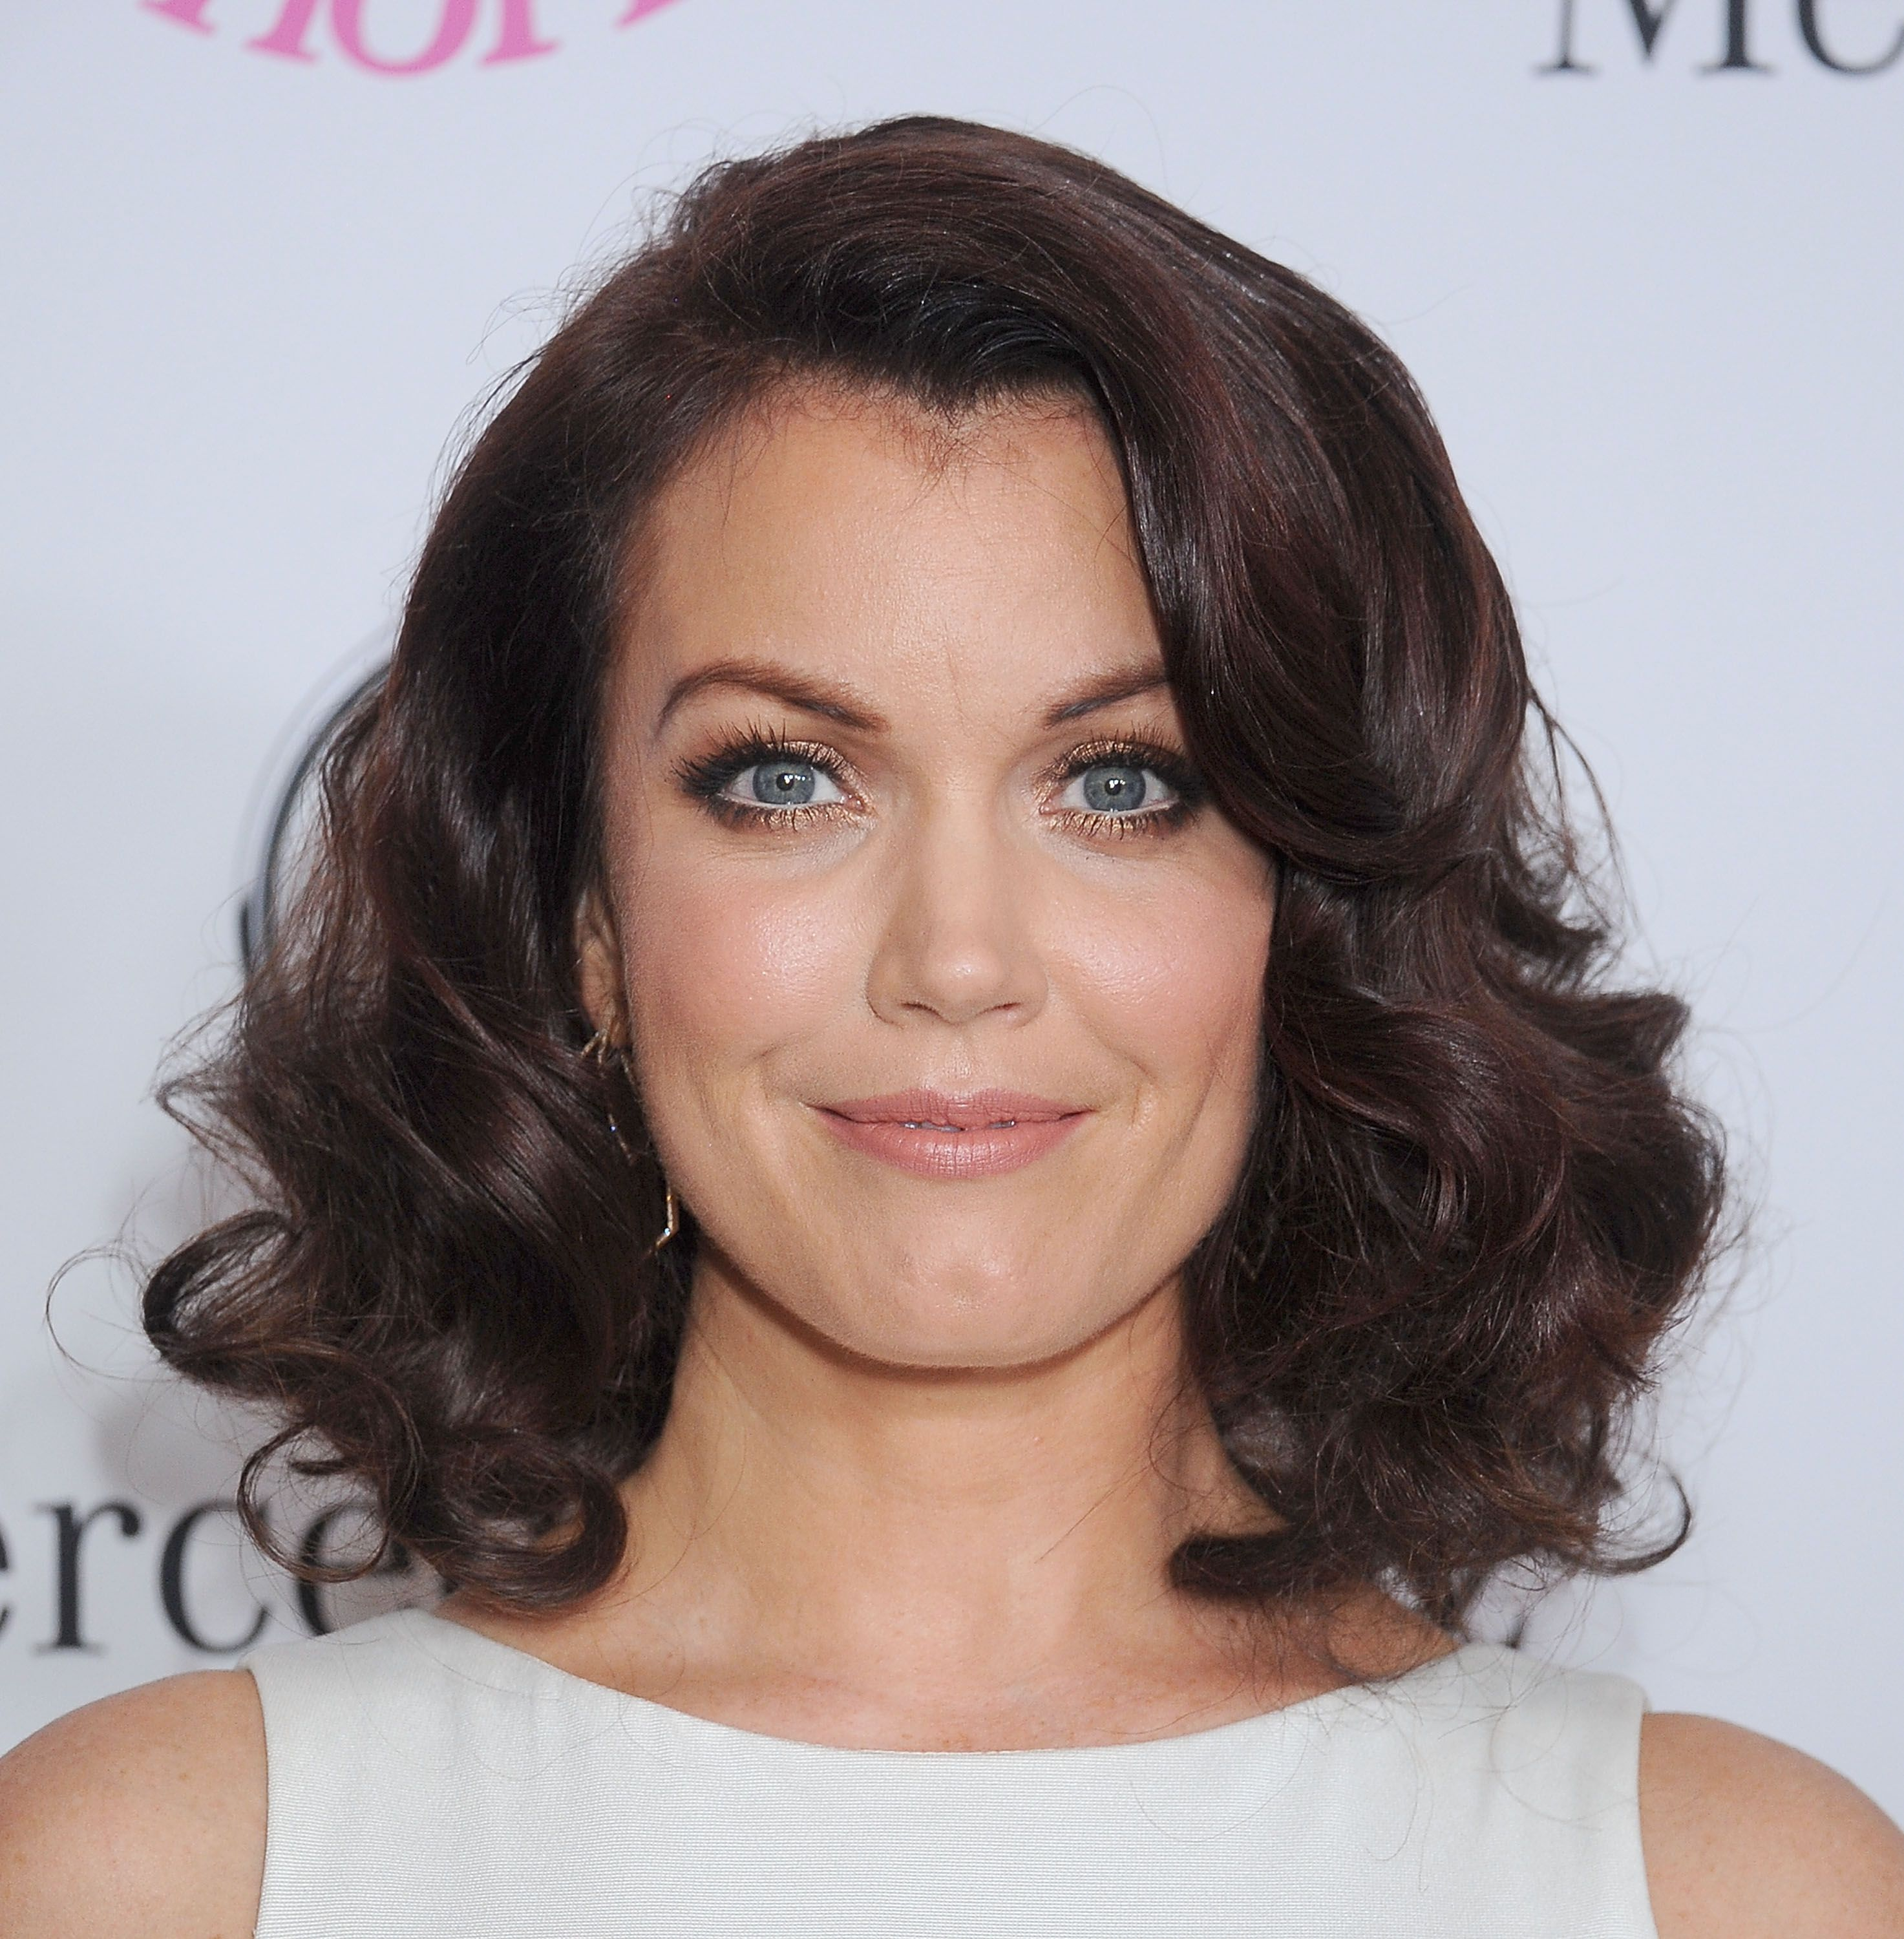 Bellamy Young with curly hair